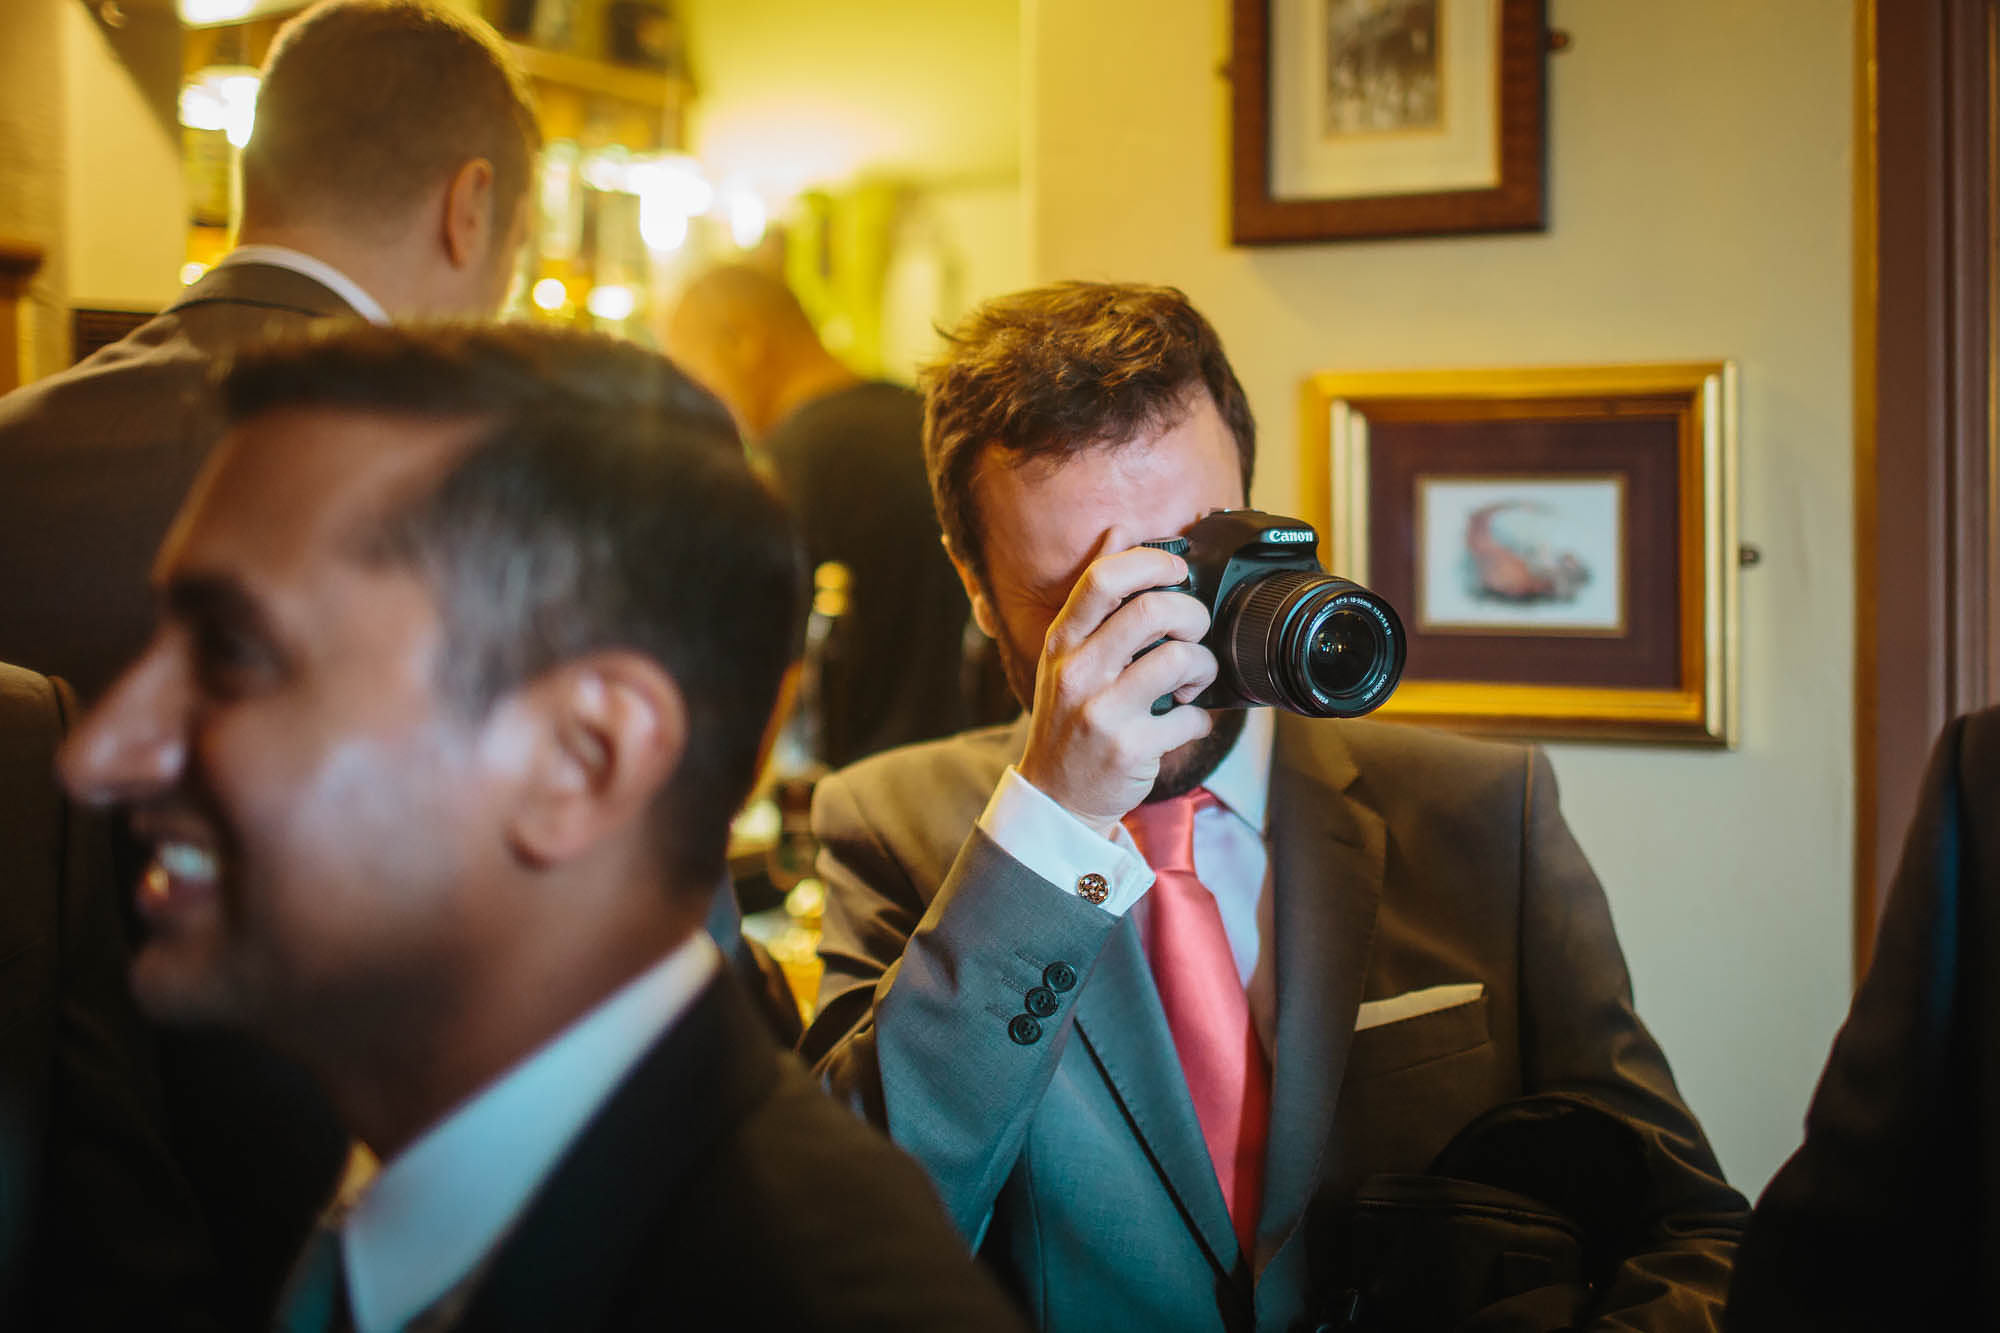 Best man taking photographs with a camera on the wedding day